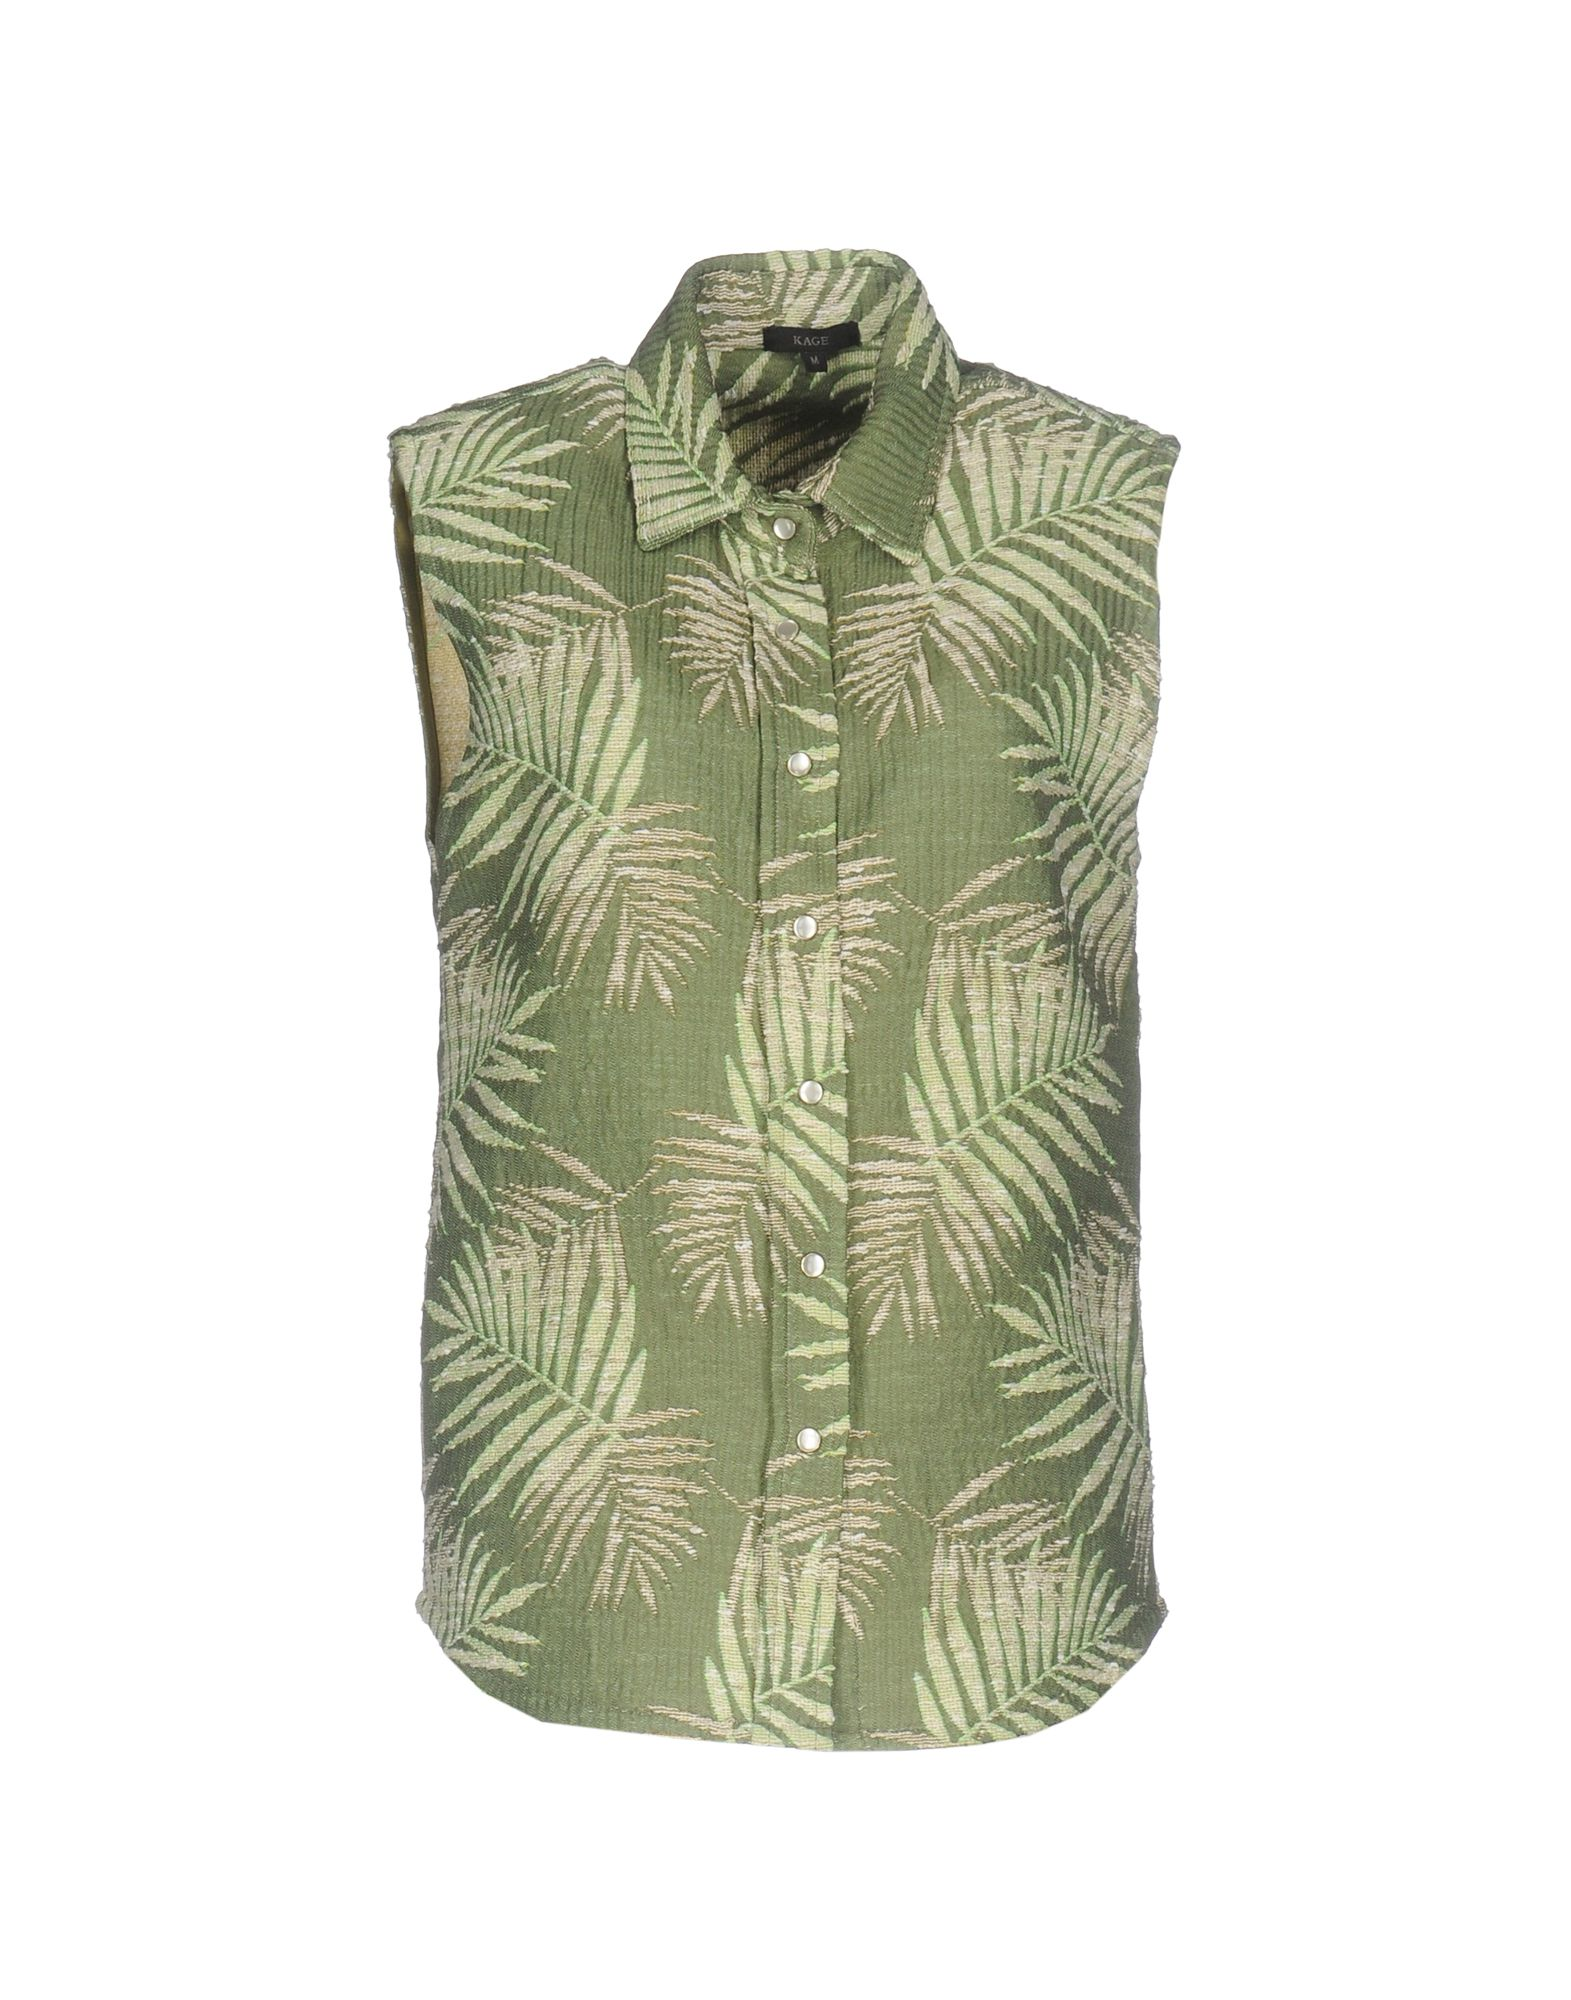 KAGE Patterned Shirts & Blouses in Military Green